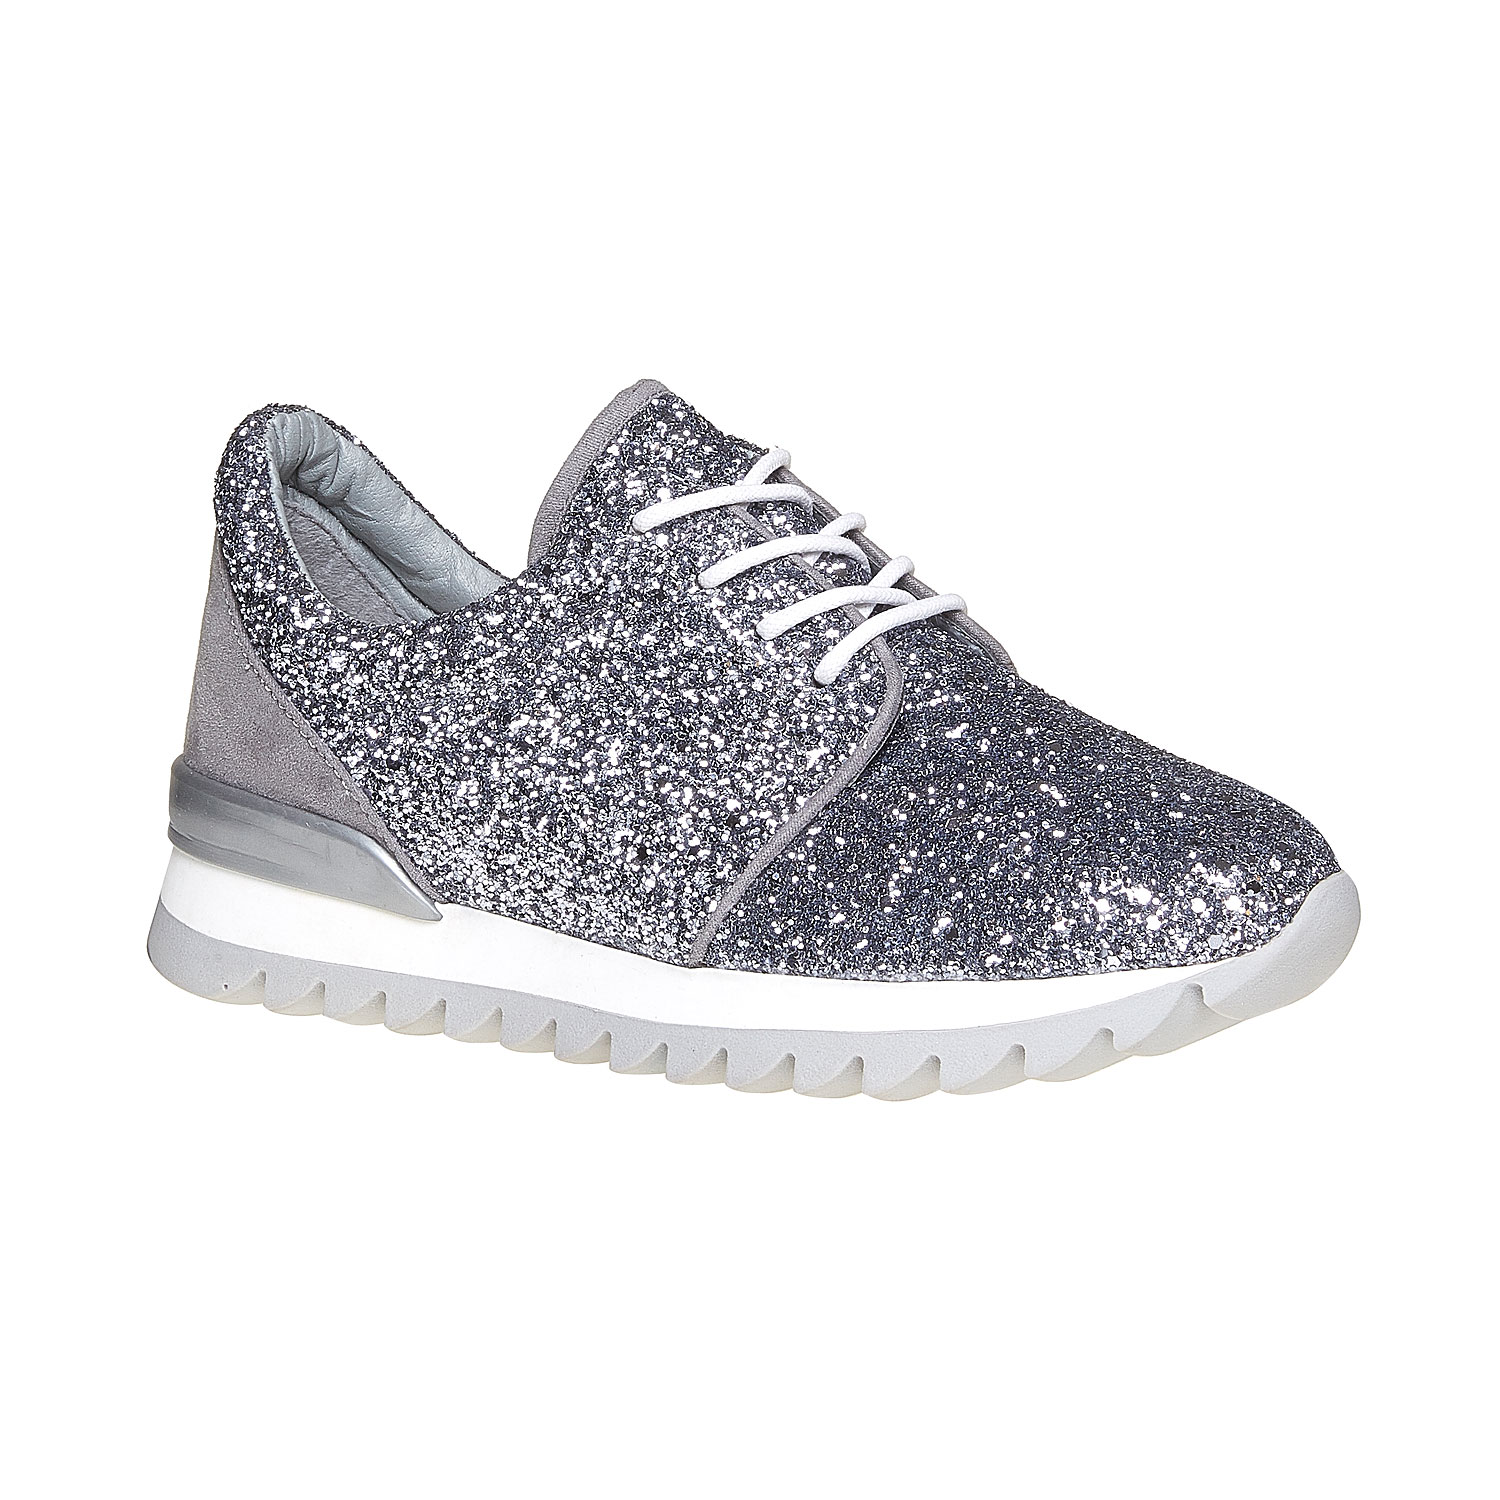 Sneakers argentate per donna North star rHOehkWjpc